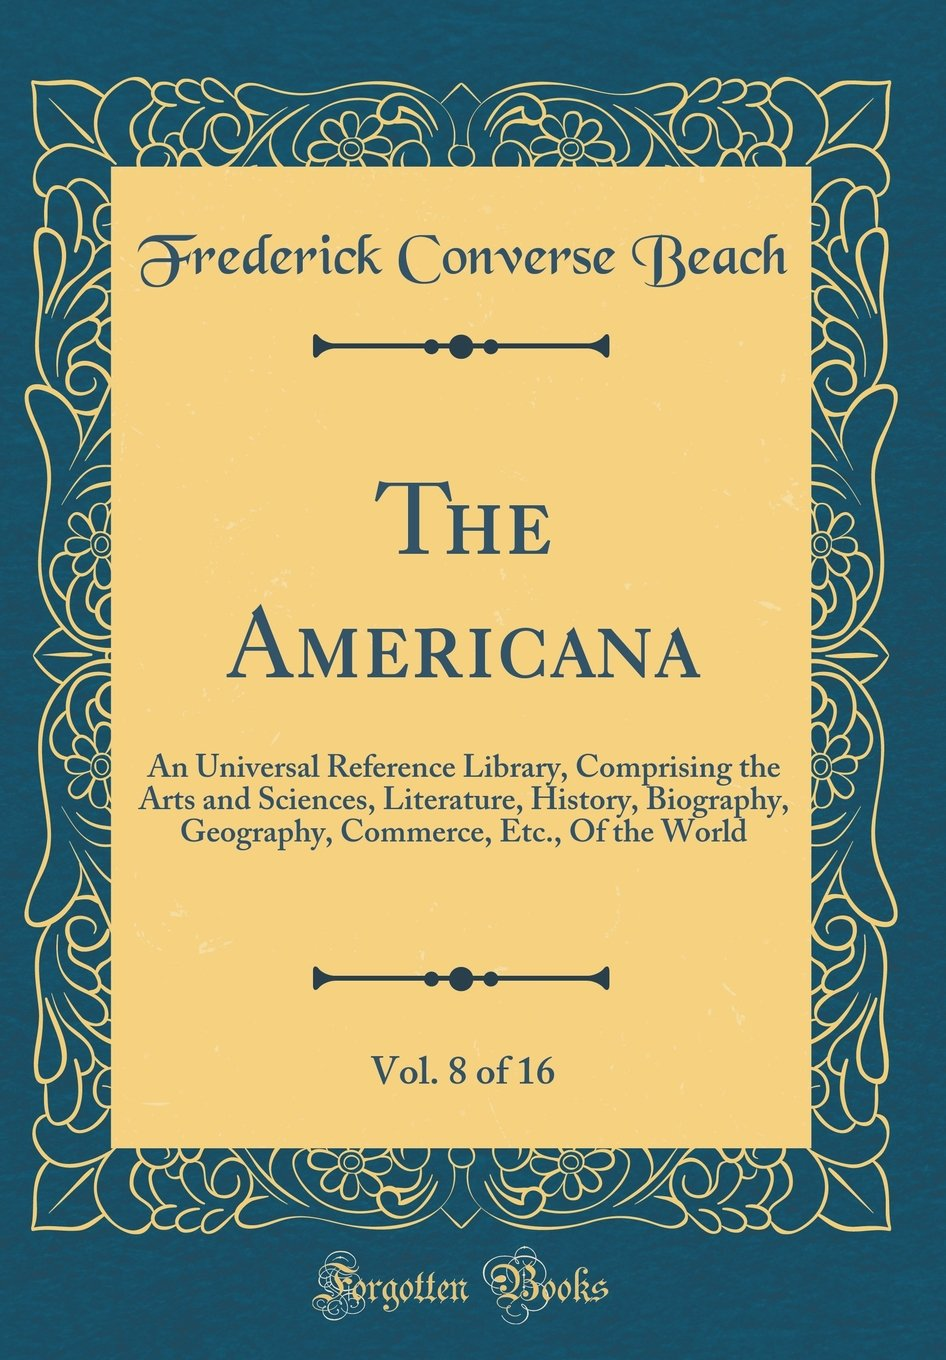 The Americana, Vol. 8 of 16: An Universal Reference Library, Comprising the Arts and Sciences, Literature, History, Biography, Geography, Commerce, Etc., Of the World (Classic Reprint) pdf